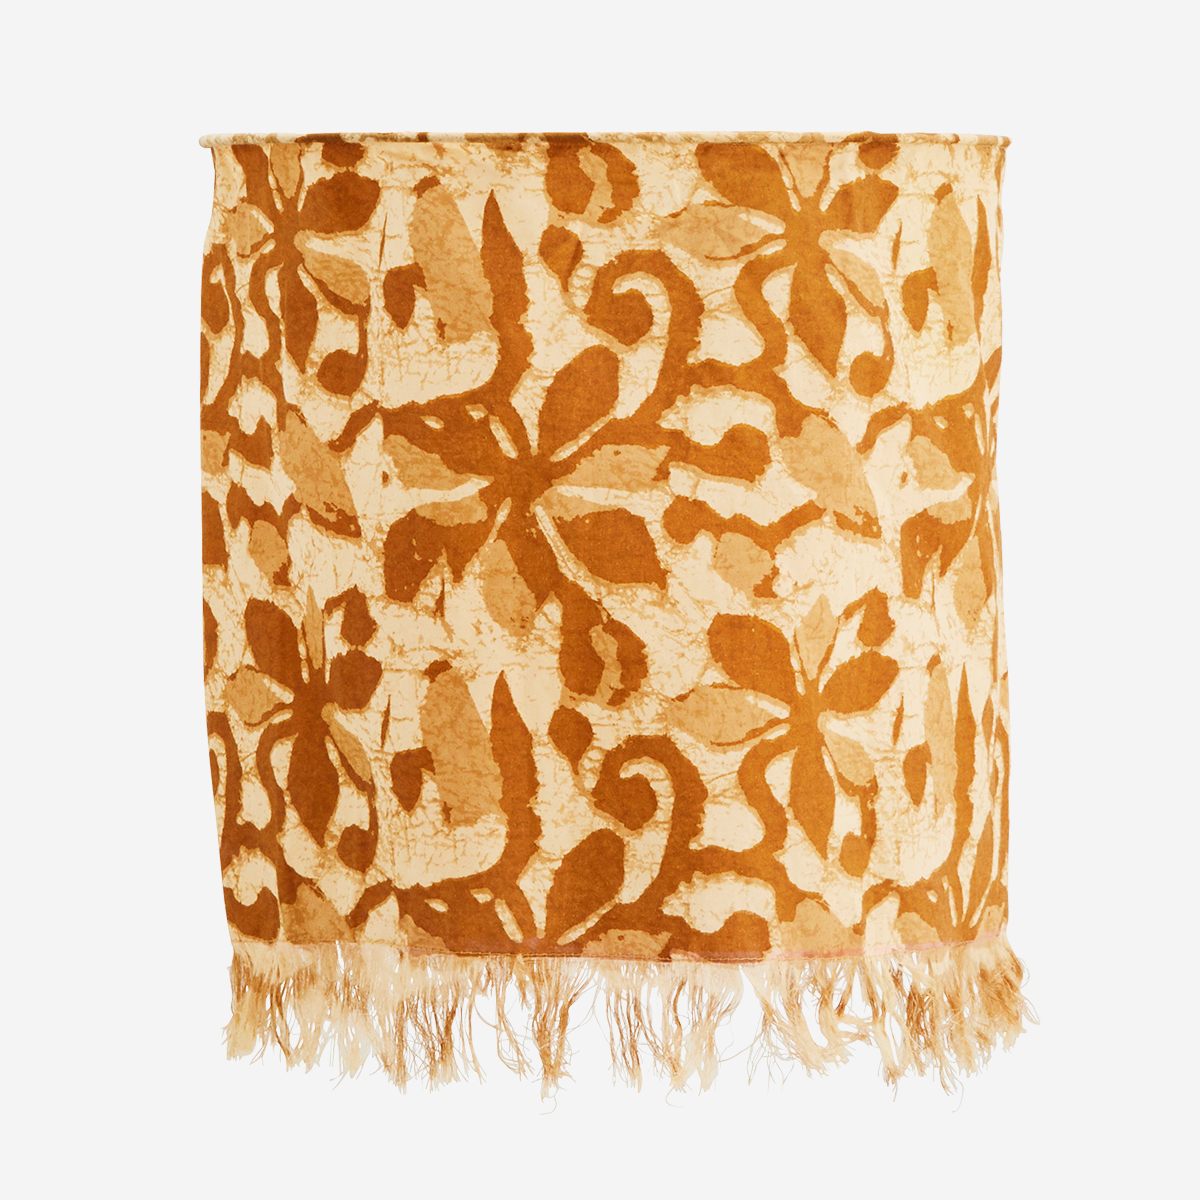 Floral Block Print Cotton Lampshade Beige/Brown - Madam Stoltz